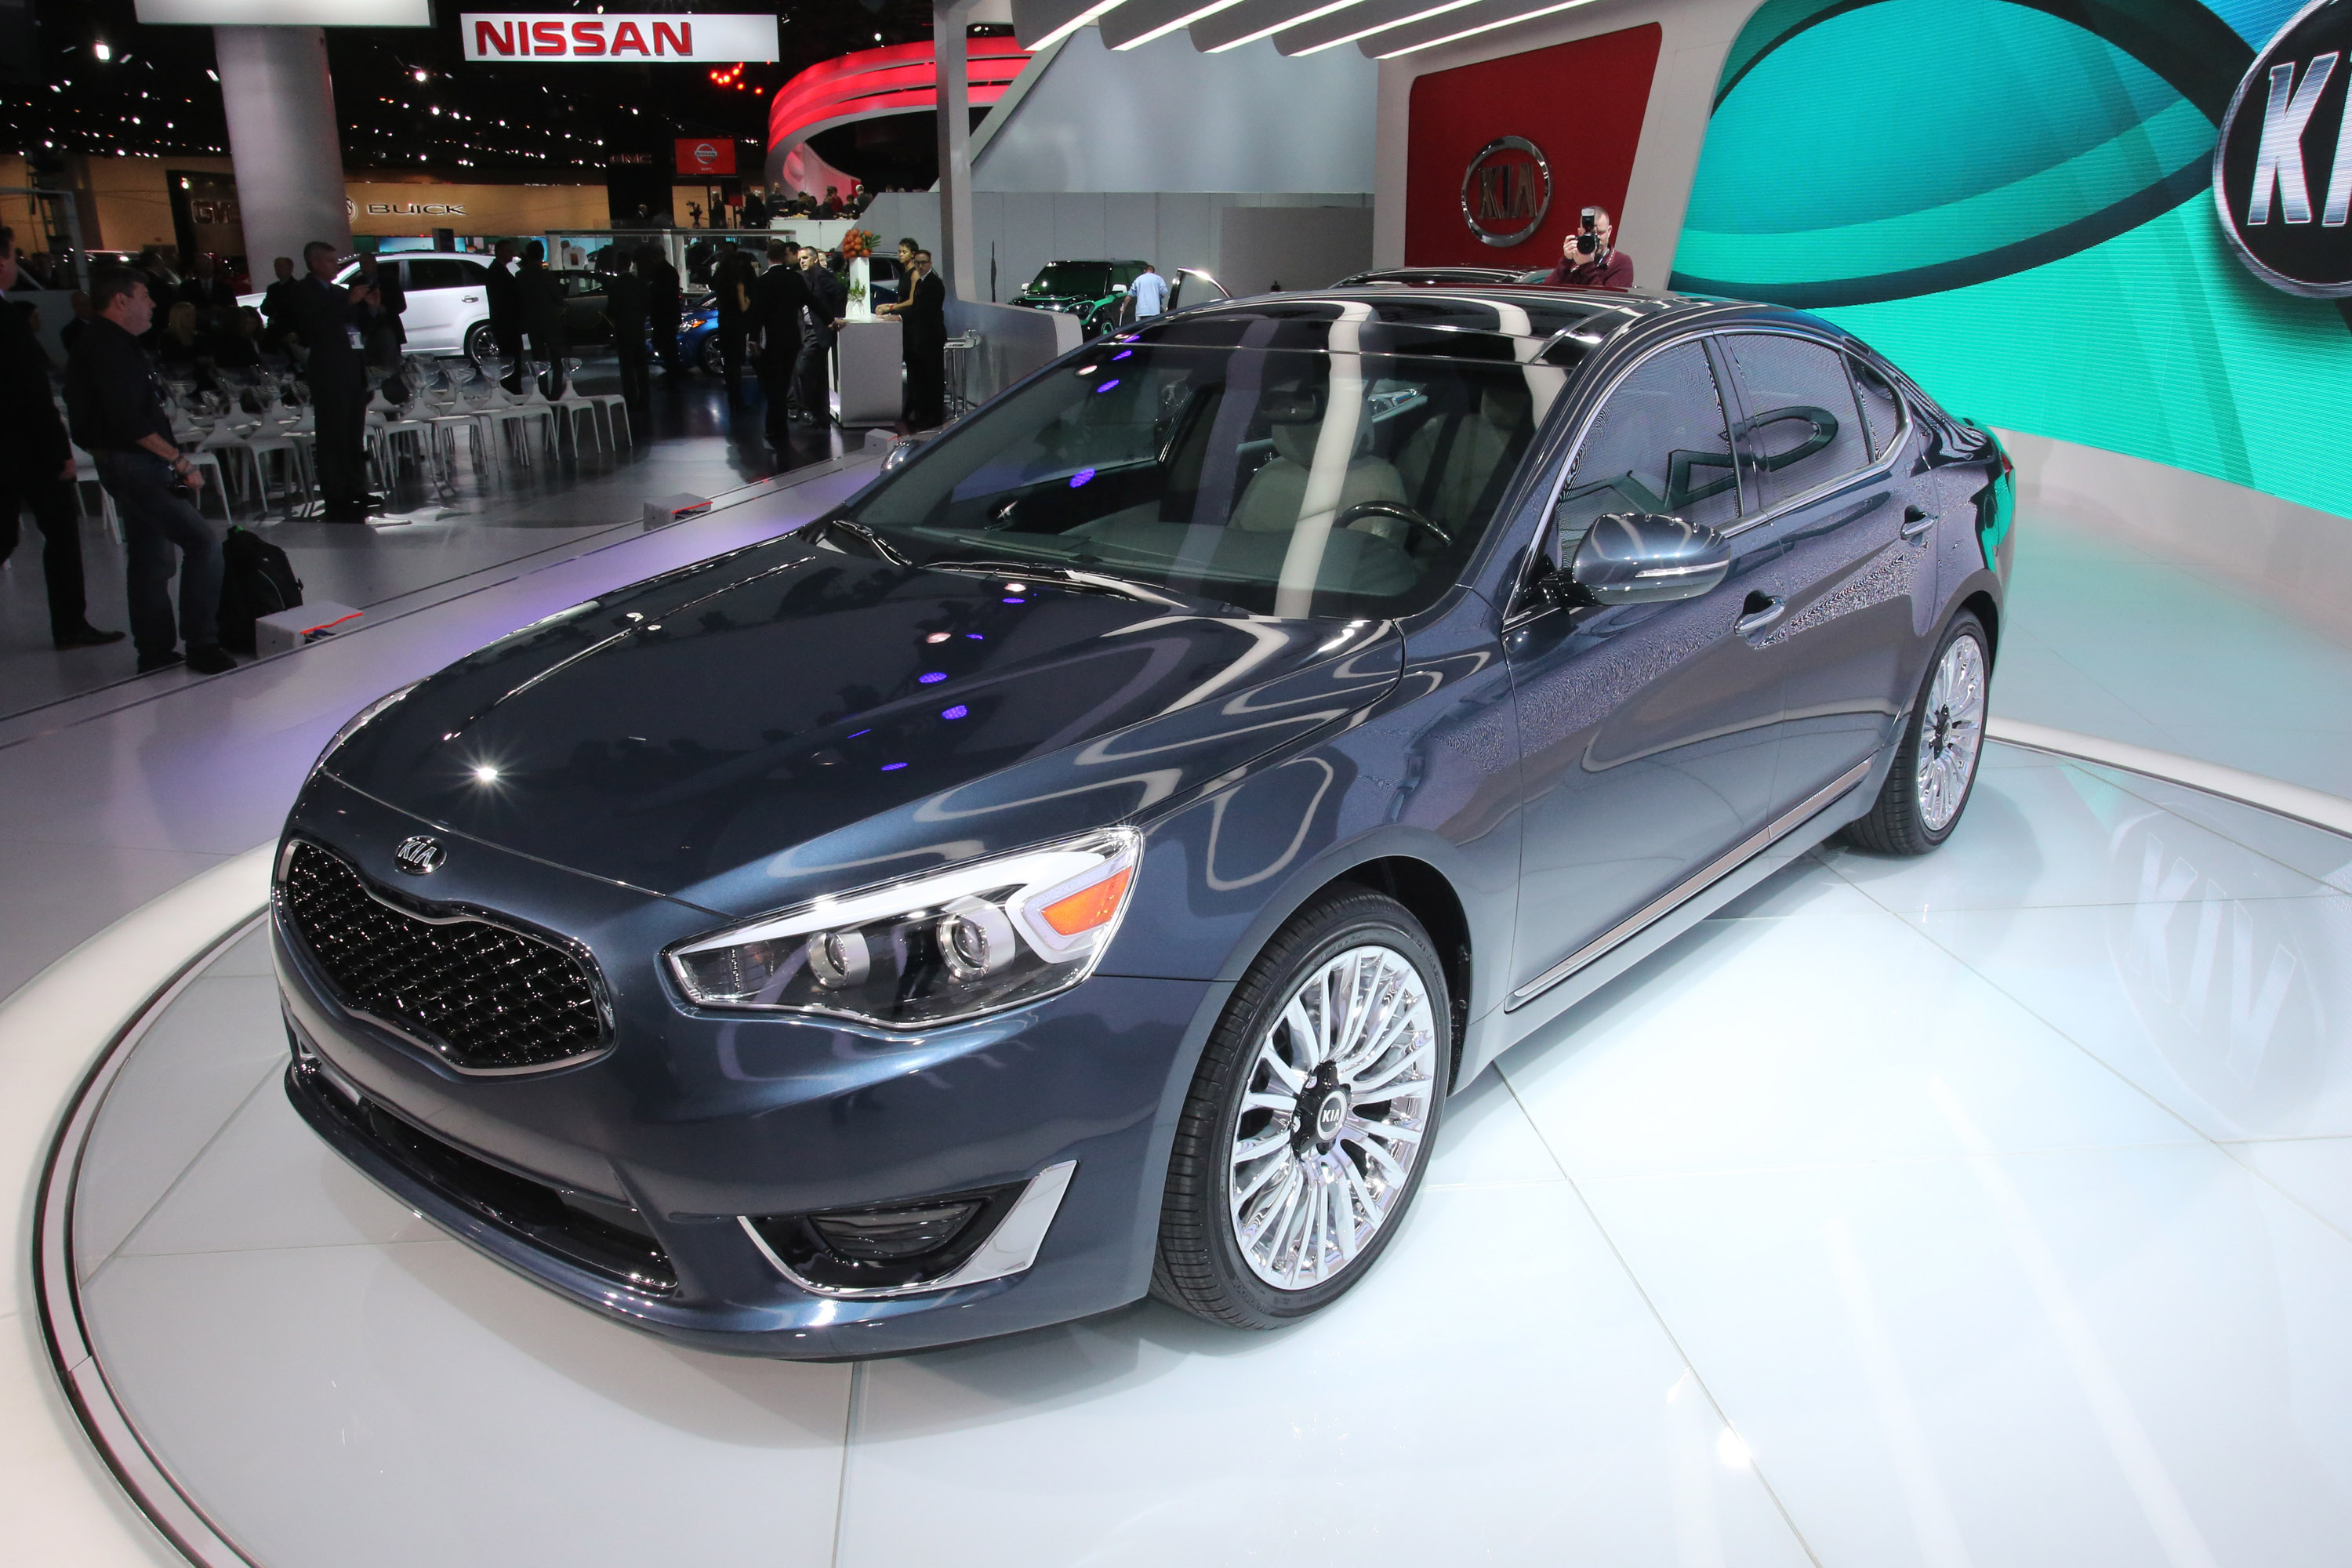 theme press eu kia at the media resouces performance jpg races high home a releases en show for sema day